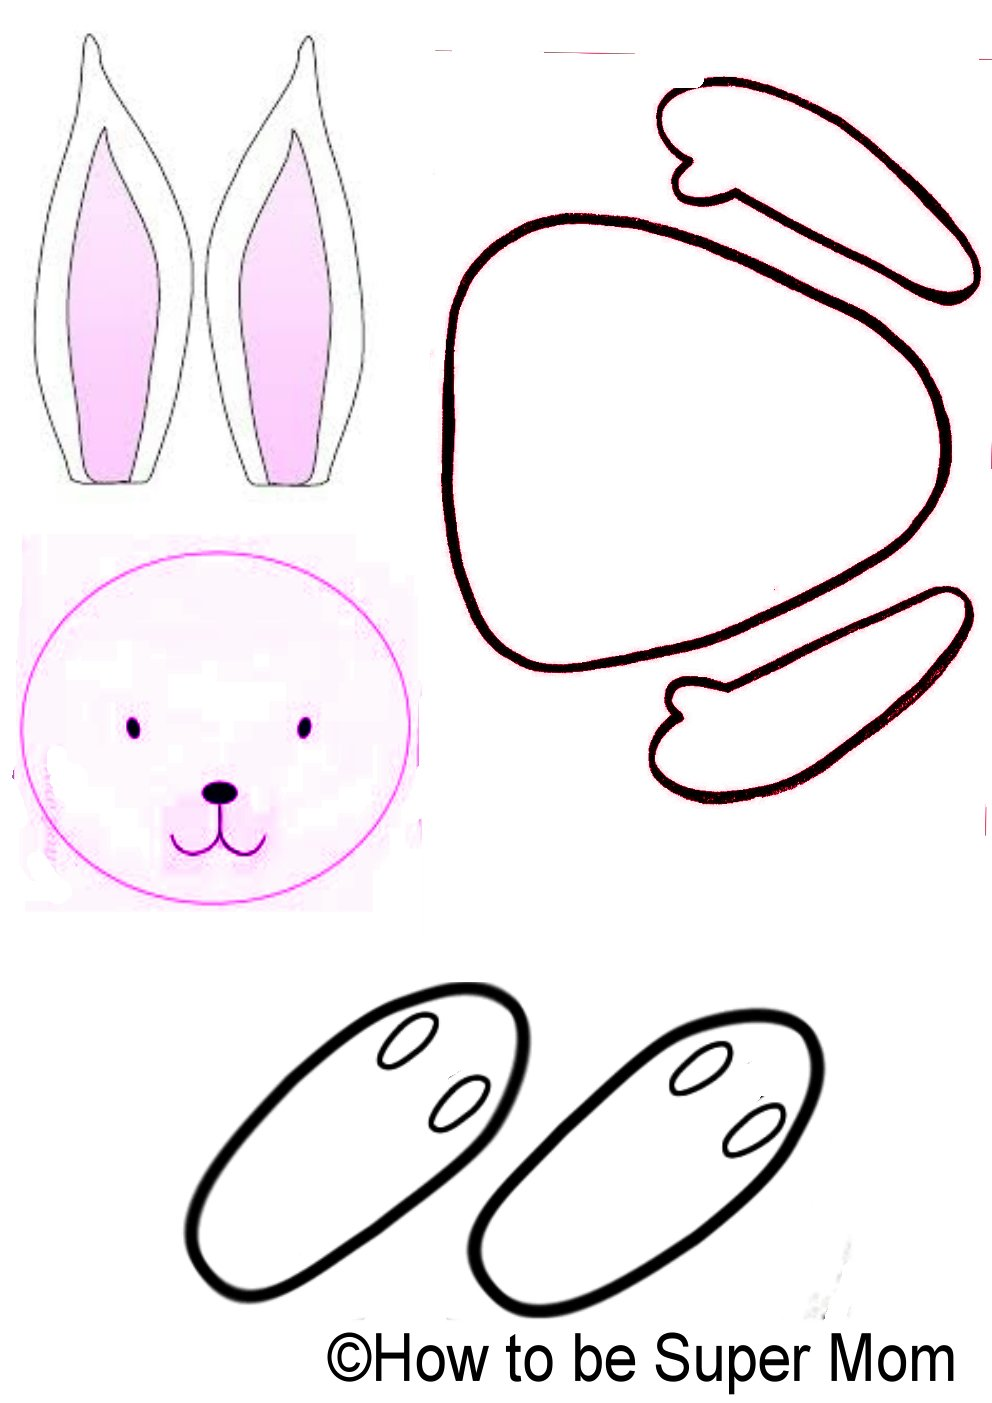 Cook N' Bake with Super Mom: Easter bunny crafts